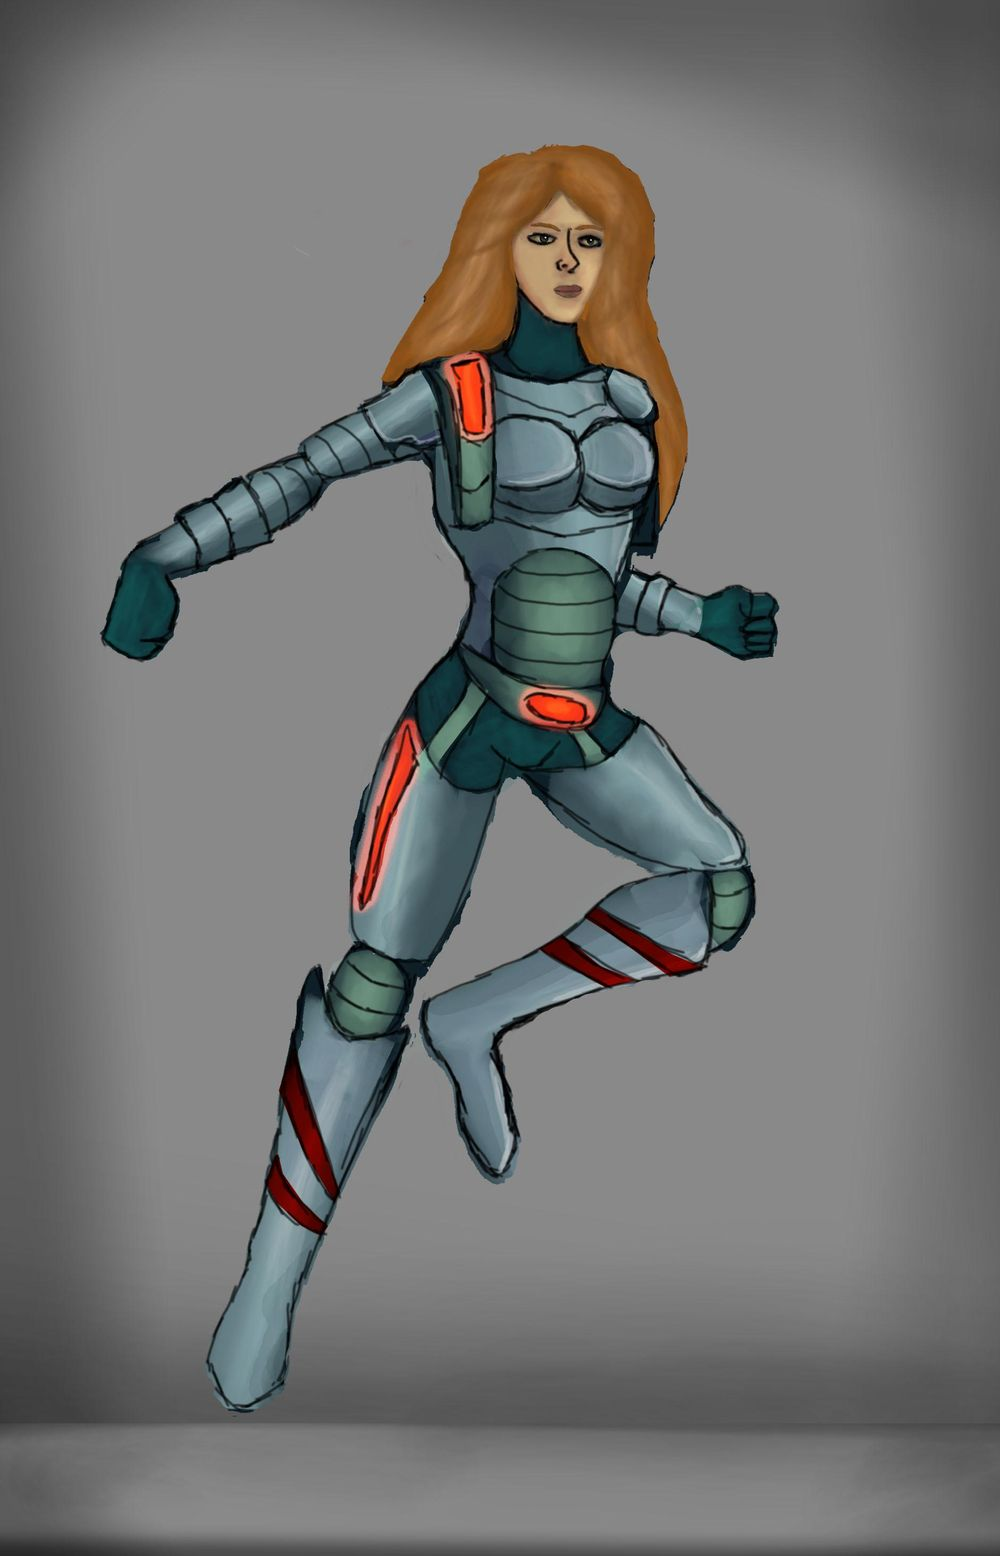 eileena space commander & Norse warrior - image 2 - student project